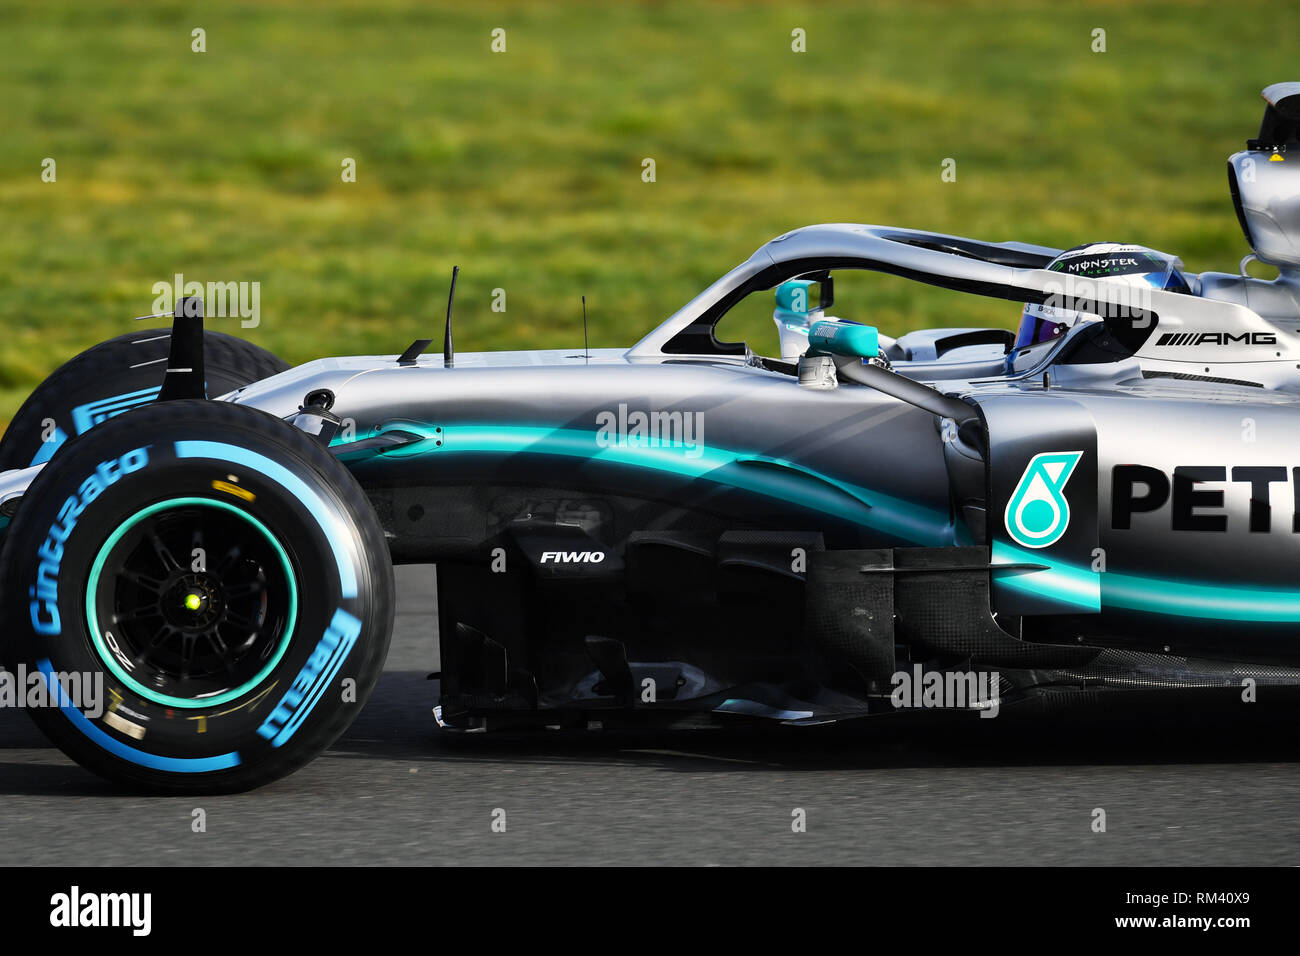 Silverstone, UK. 13th Feb, 2019. The new racing car W10 of the Formula 1 racing team AMG Petronas Motorsport during test drives on the race track. (to dpa 'Maiden voyage of the new Formula 1 Mercedes: 'Starting from zero'') Credit: Mercedes-AMG Petronas Motorsport/MediaPortal Daimler AG/dpa - ATTENTION: Only for editorial use in connection with the current reporting and only with complete mention of the above credit/dpa/Alamy Live News - Stock Image